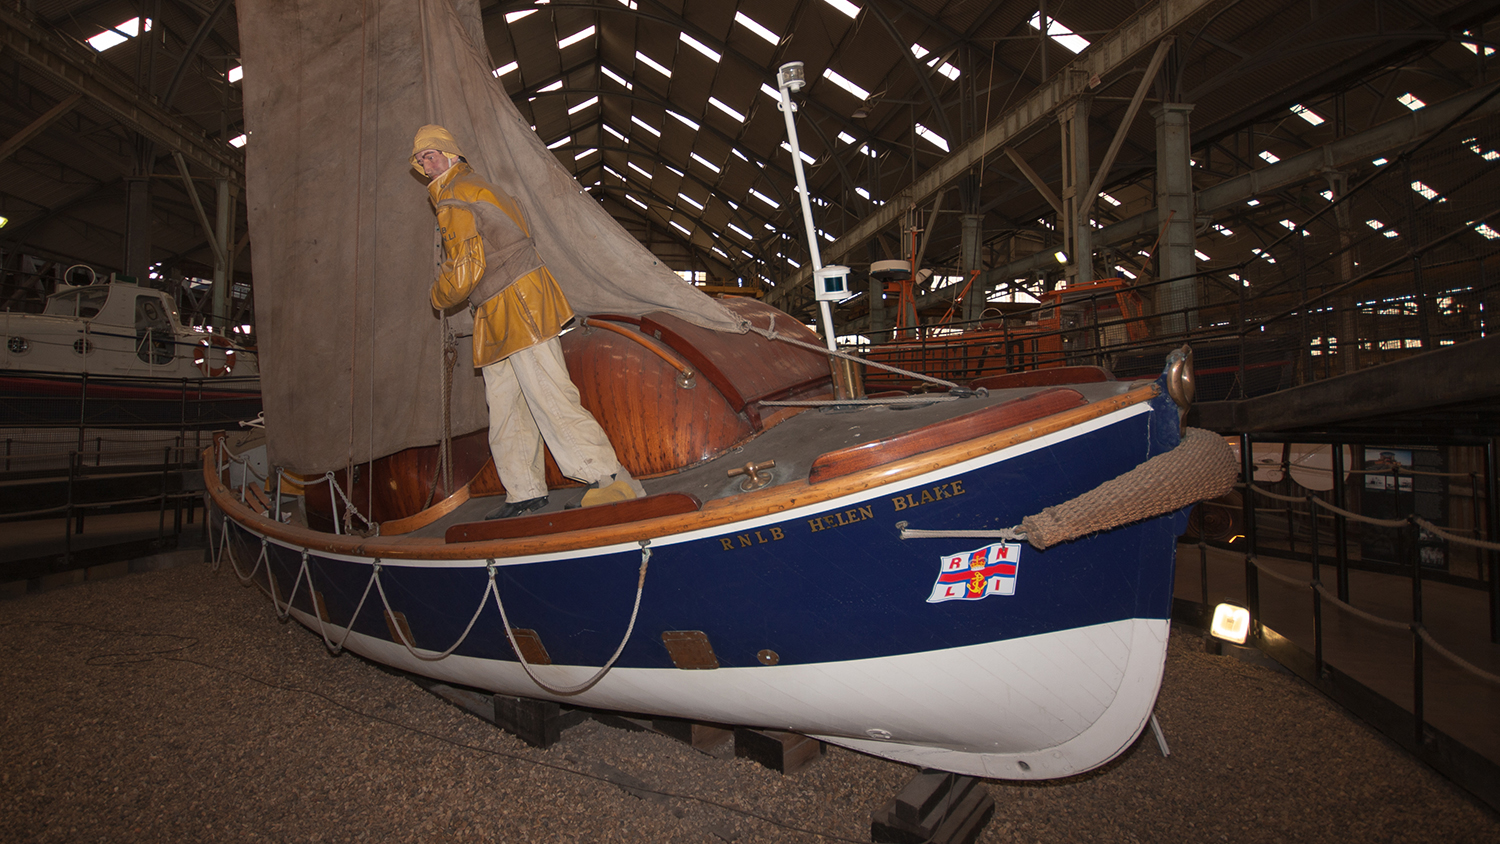 Helen Blake lifeboat at The Historic Lifeboat Collection in Chatham, Kent.